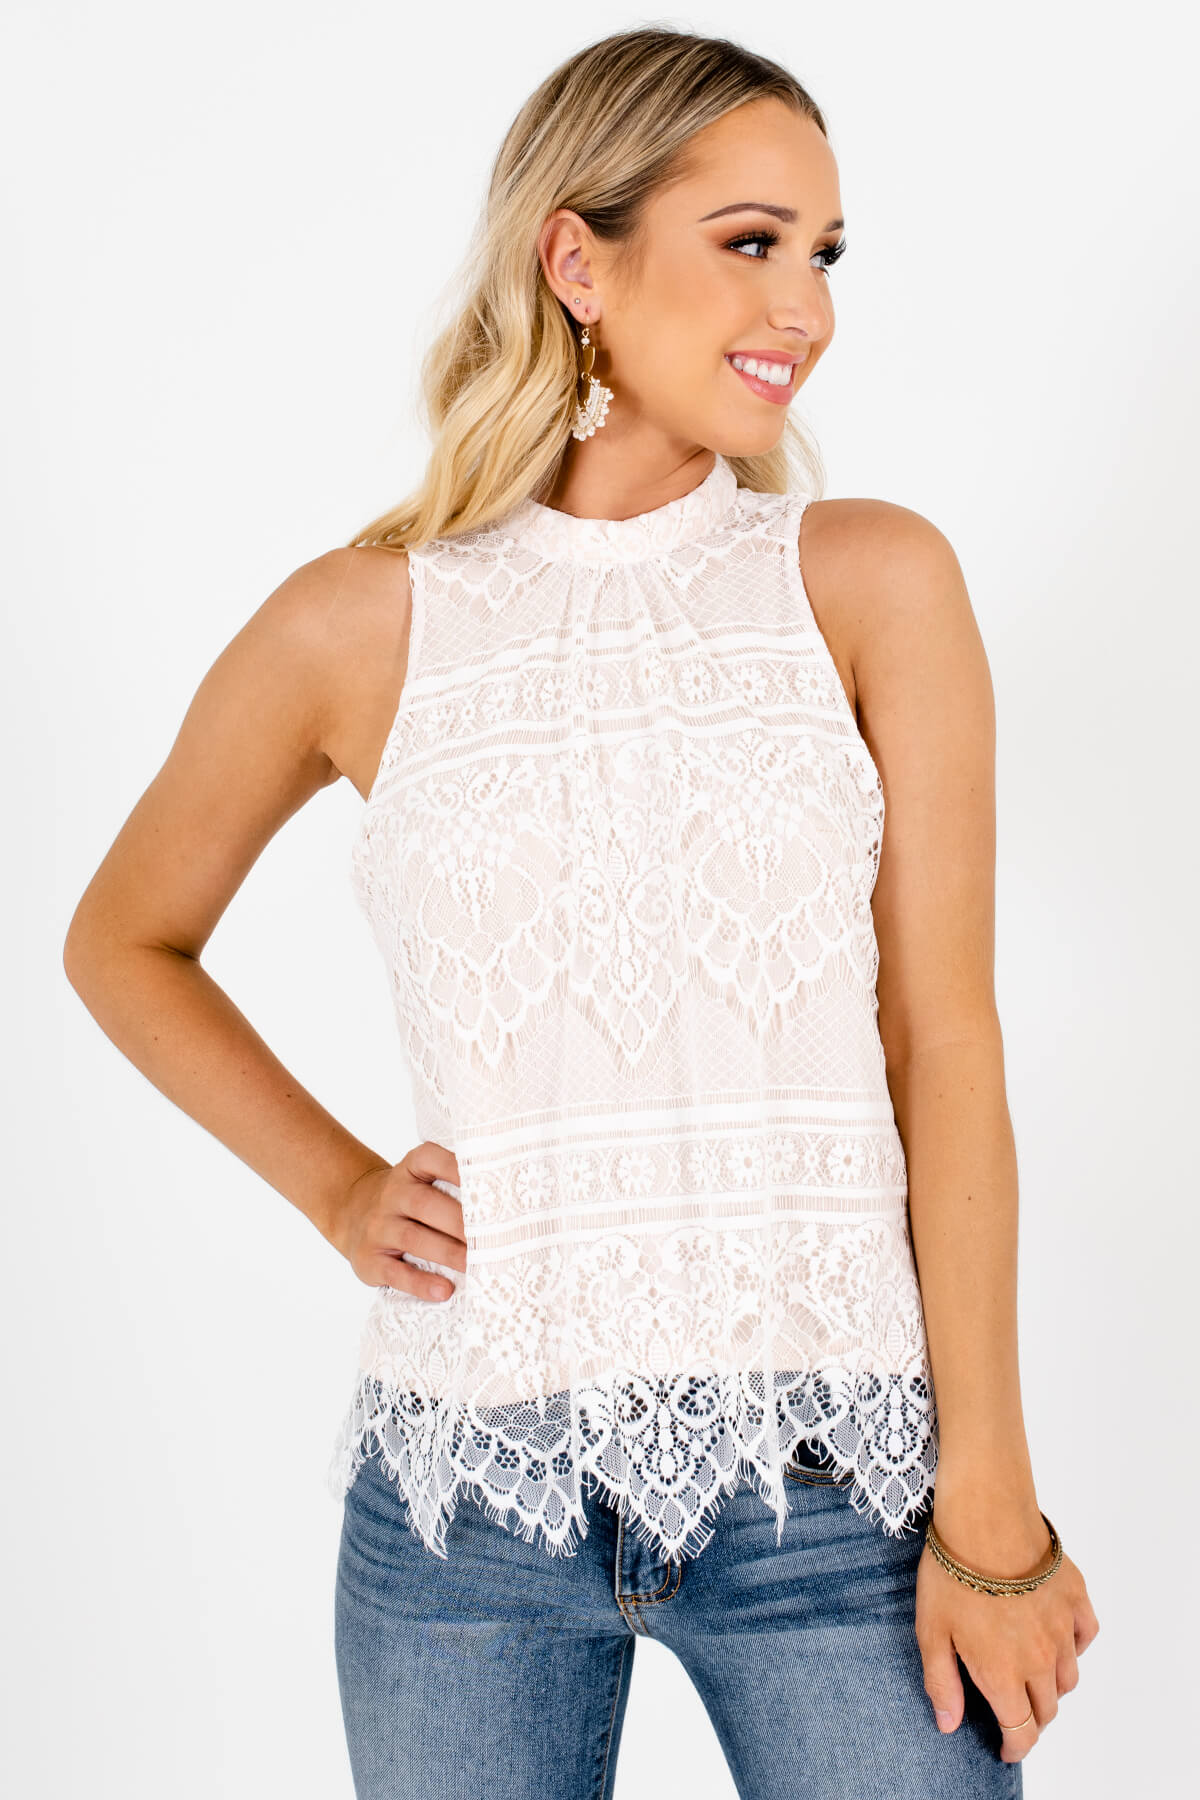 White Lace Overlay Boutique Tank Tops for Women